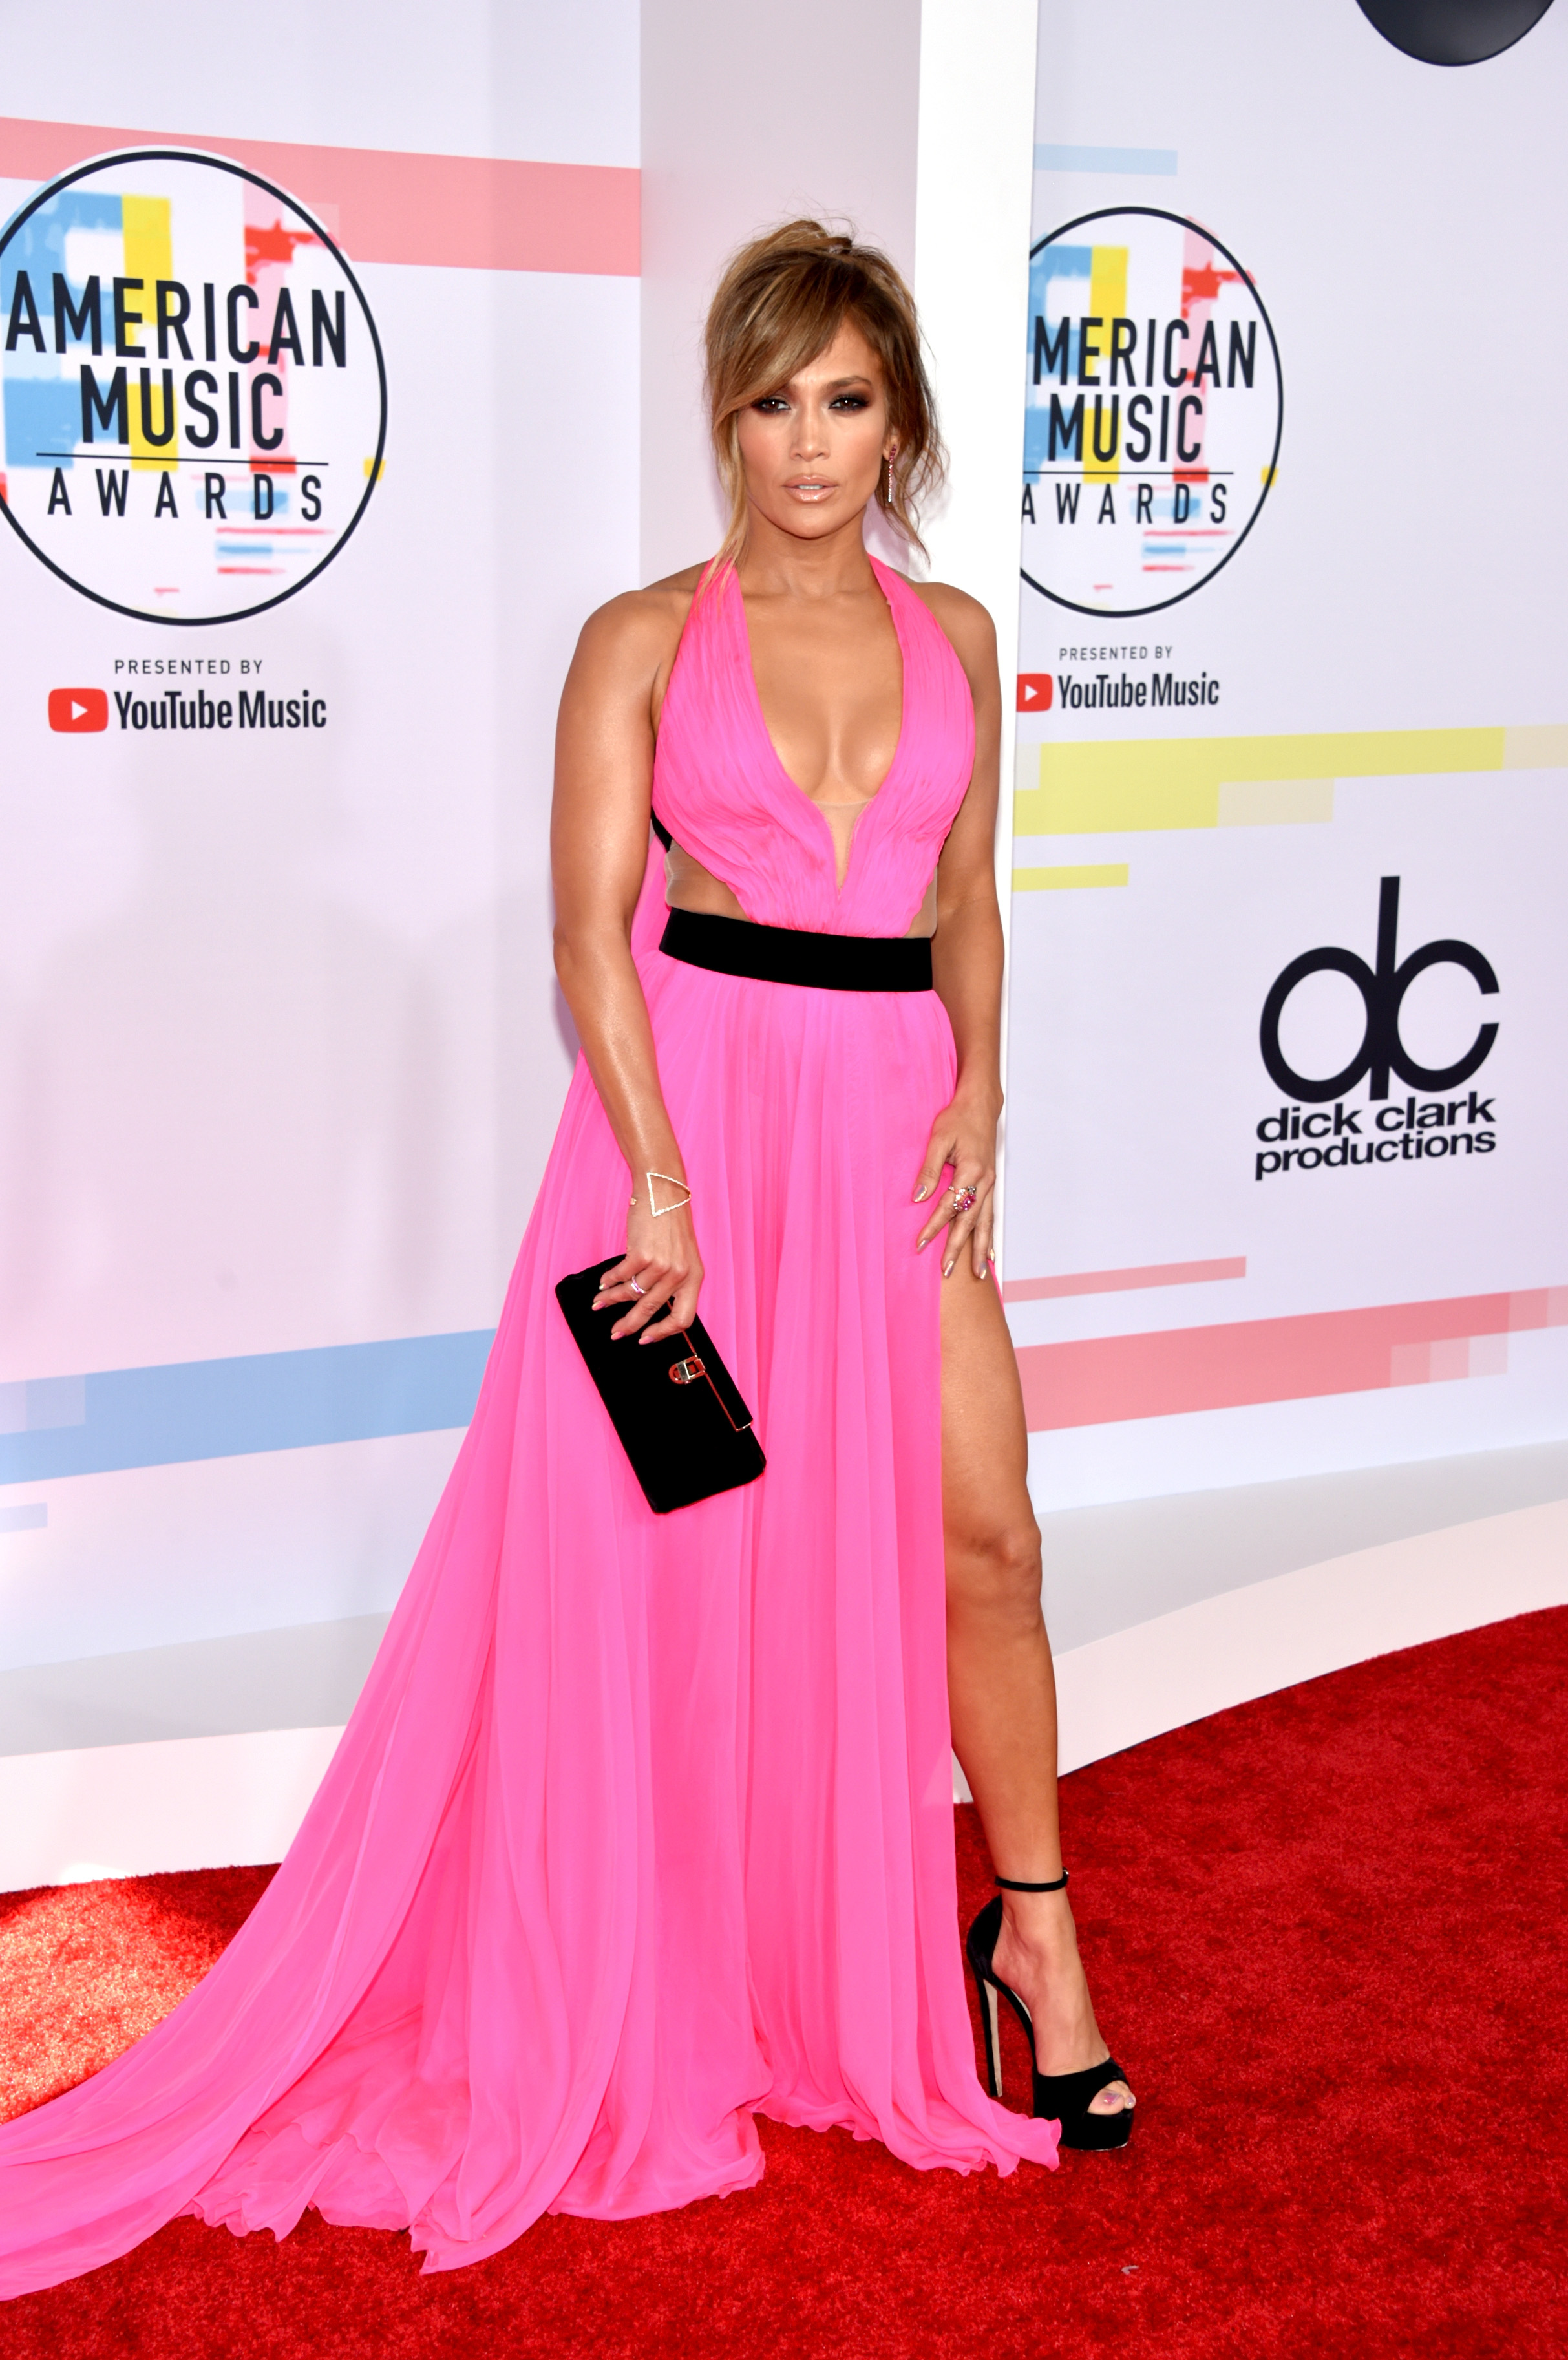 Celebrity Red Carpet Arrivals at the 2019 American Music